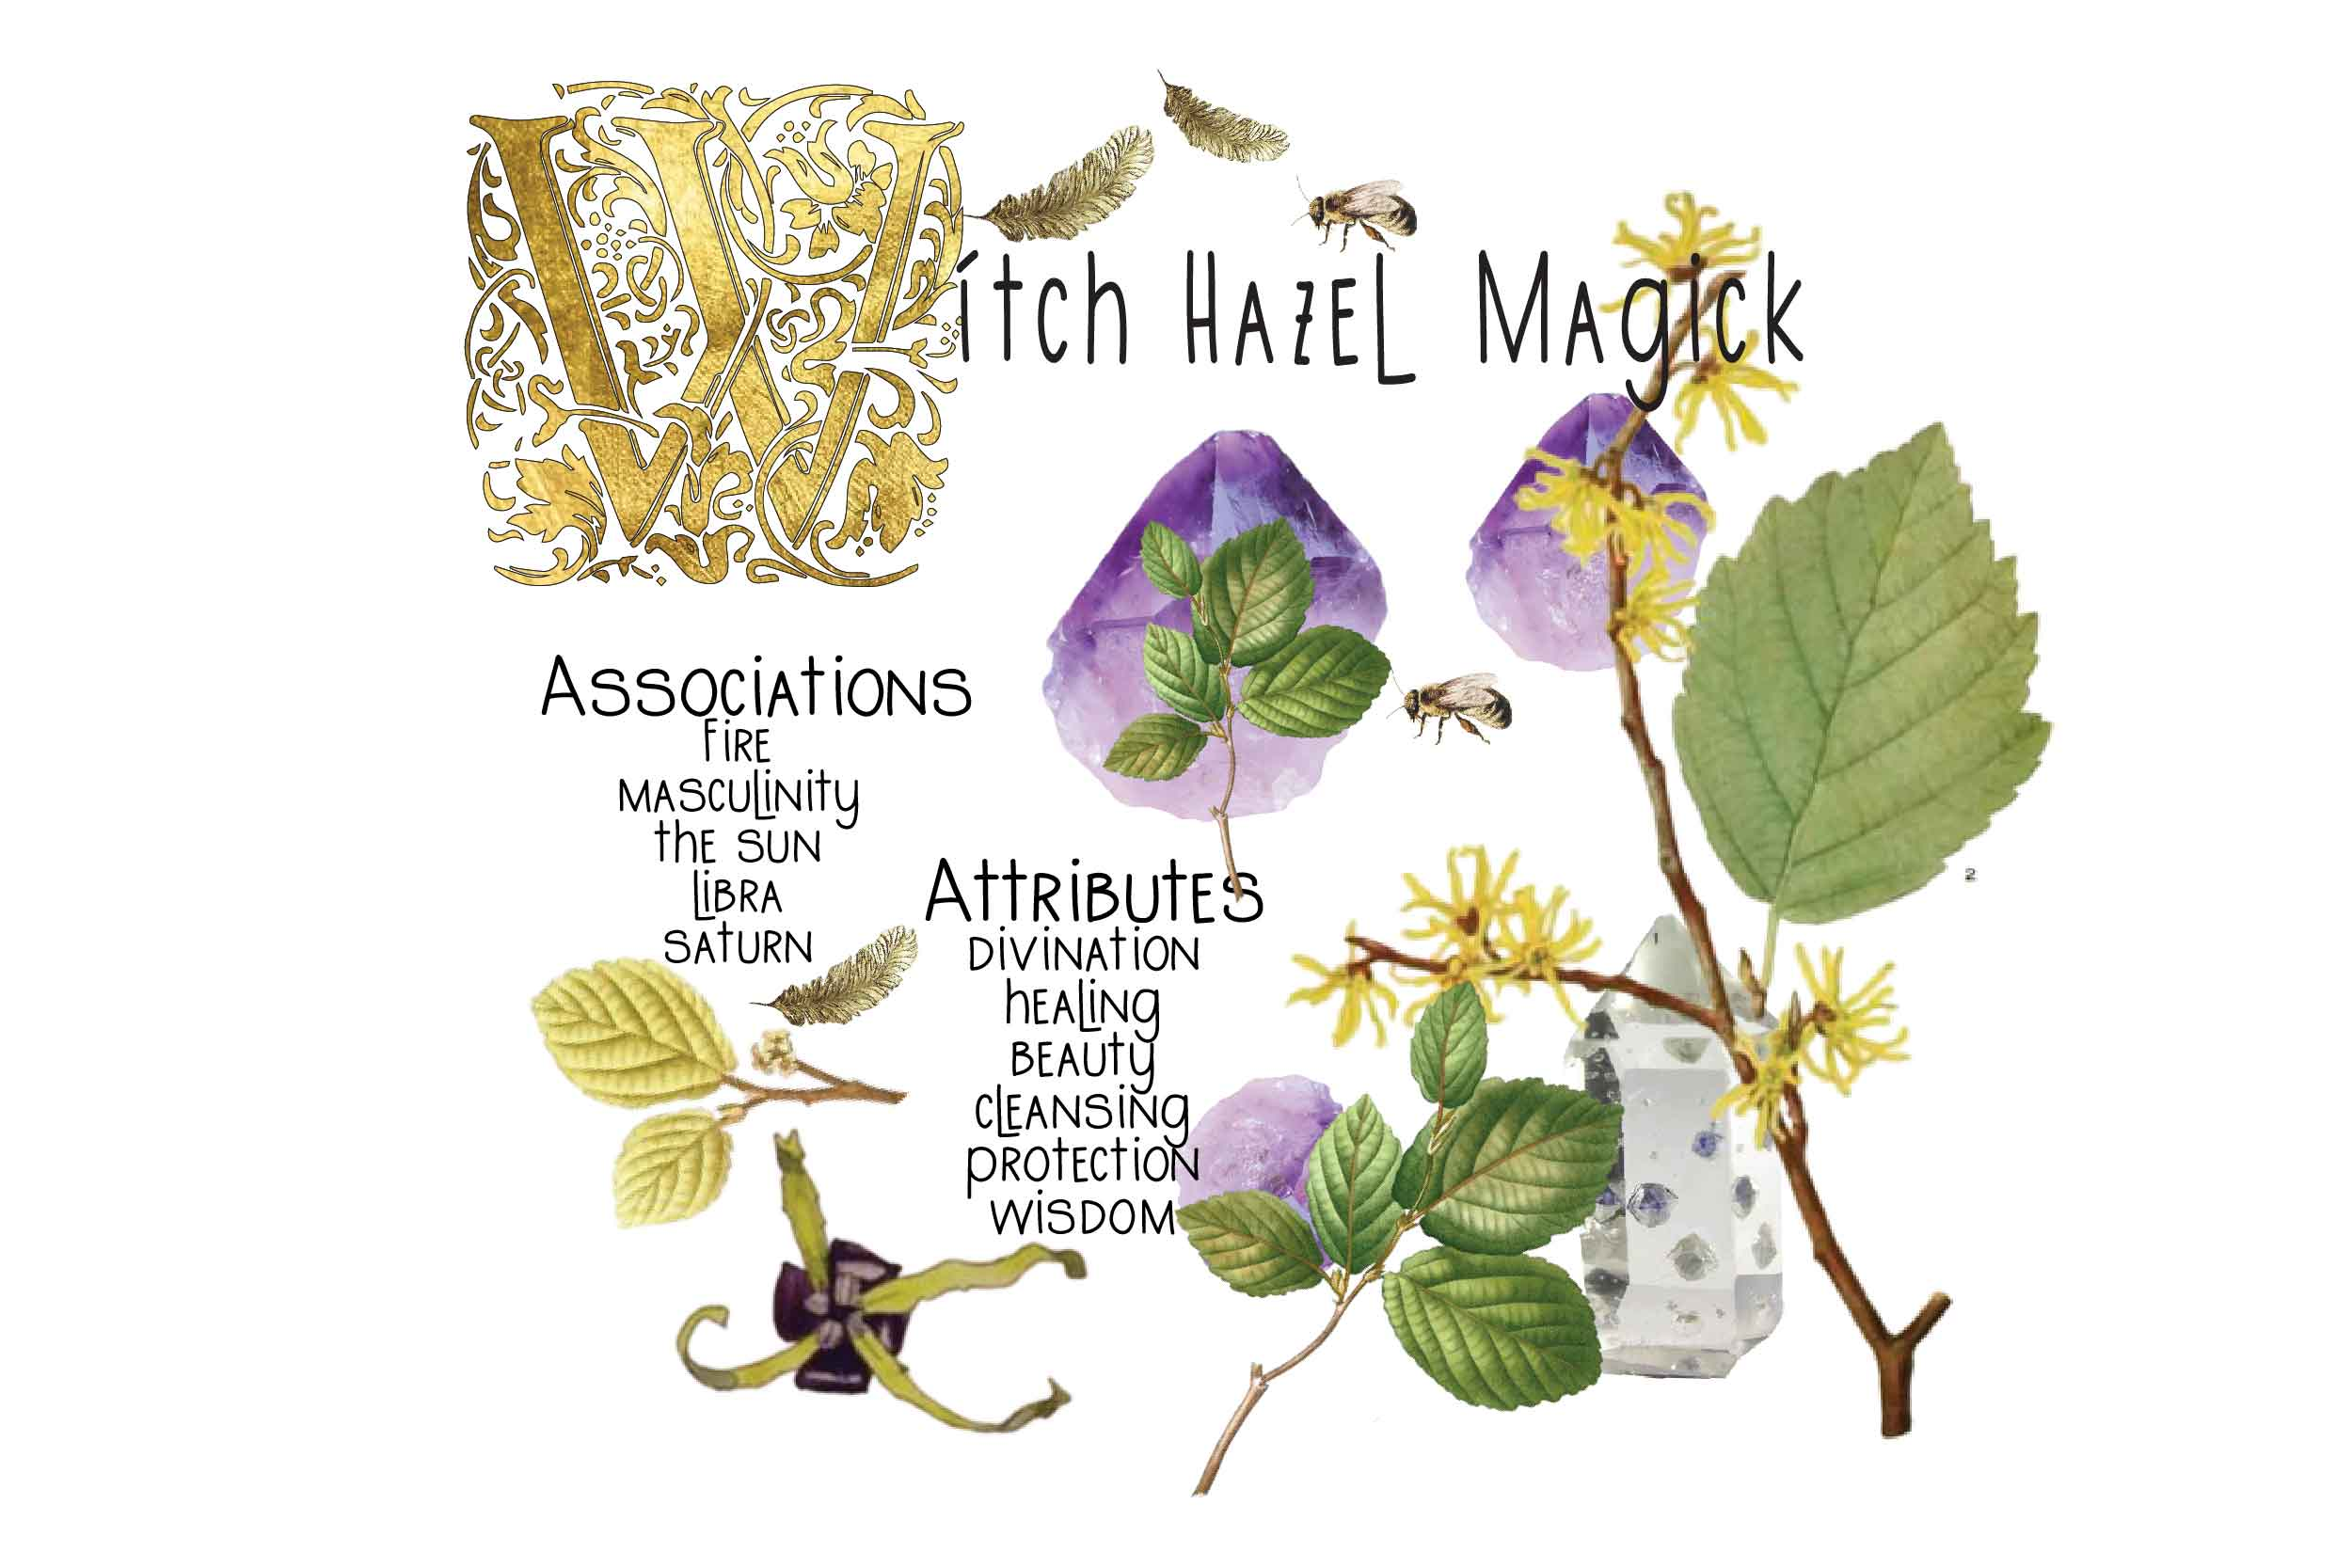 magickal properties of witch hazel illustrated